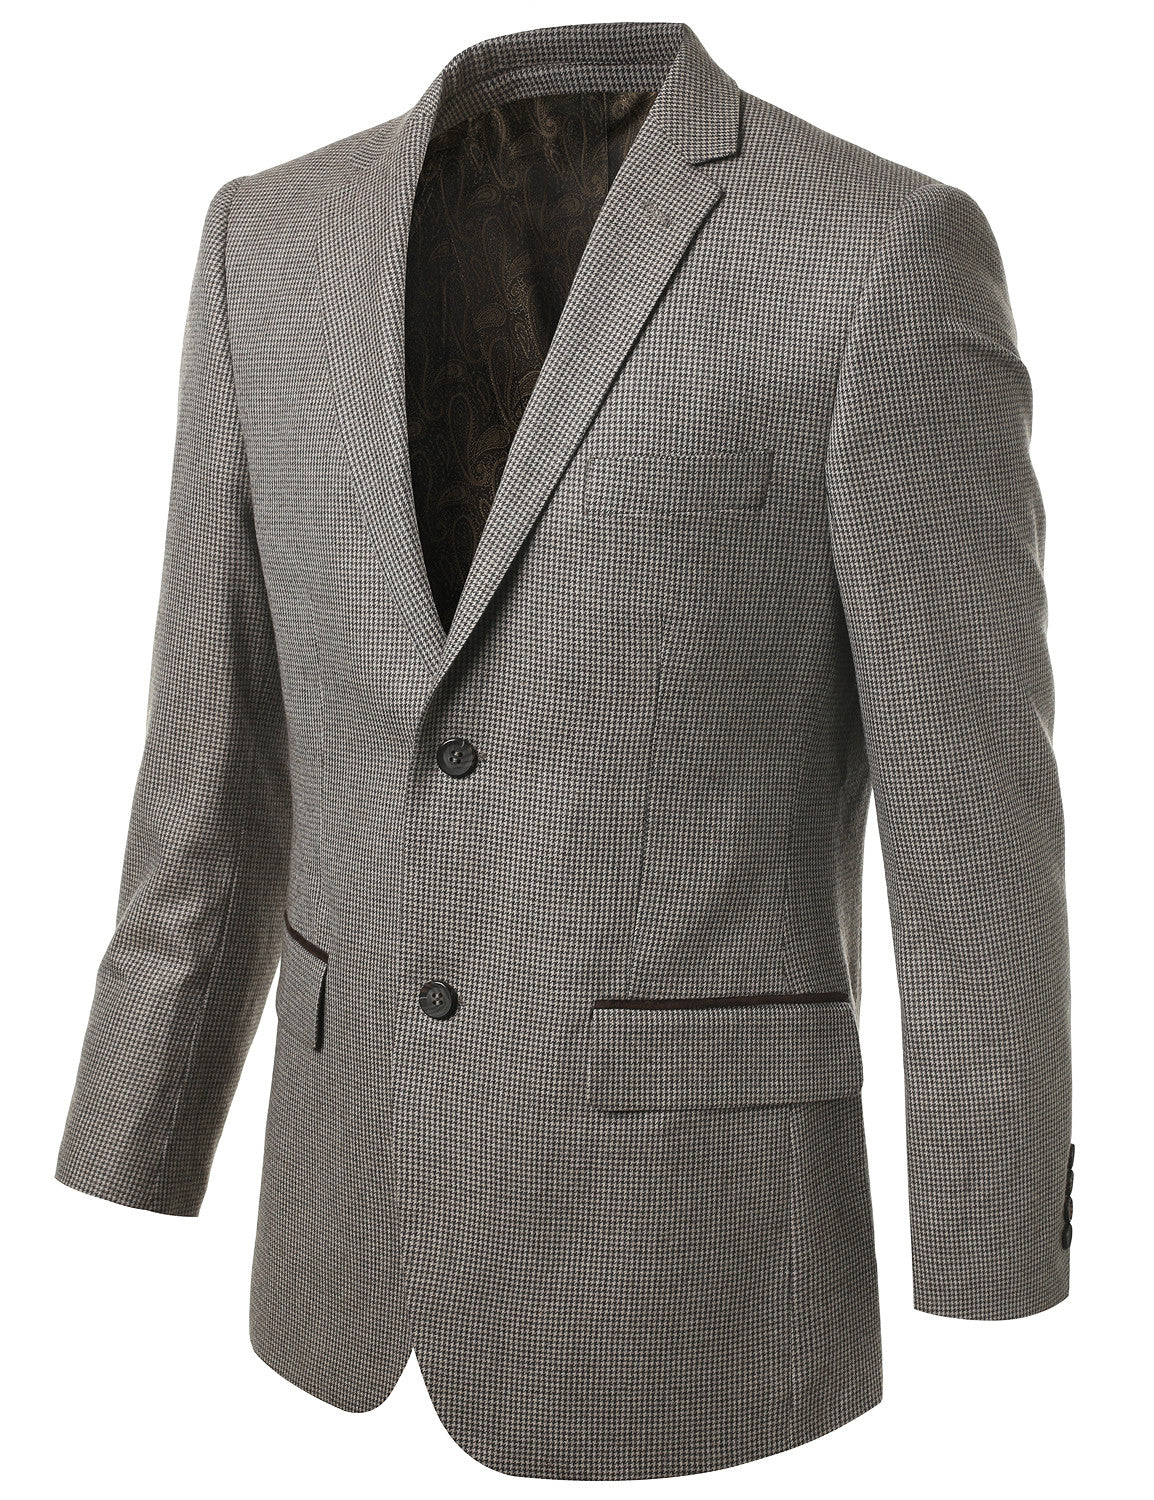 07OLIVE Modern Fit 2-Button Wool Blazer (Big & Tall Available)